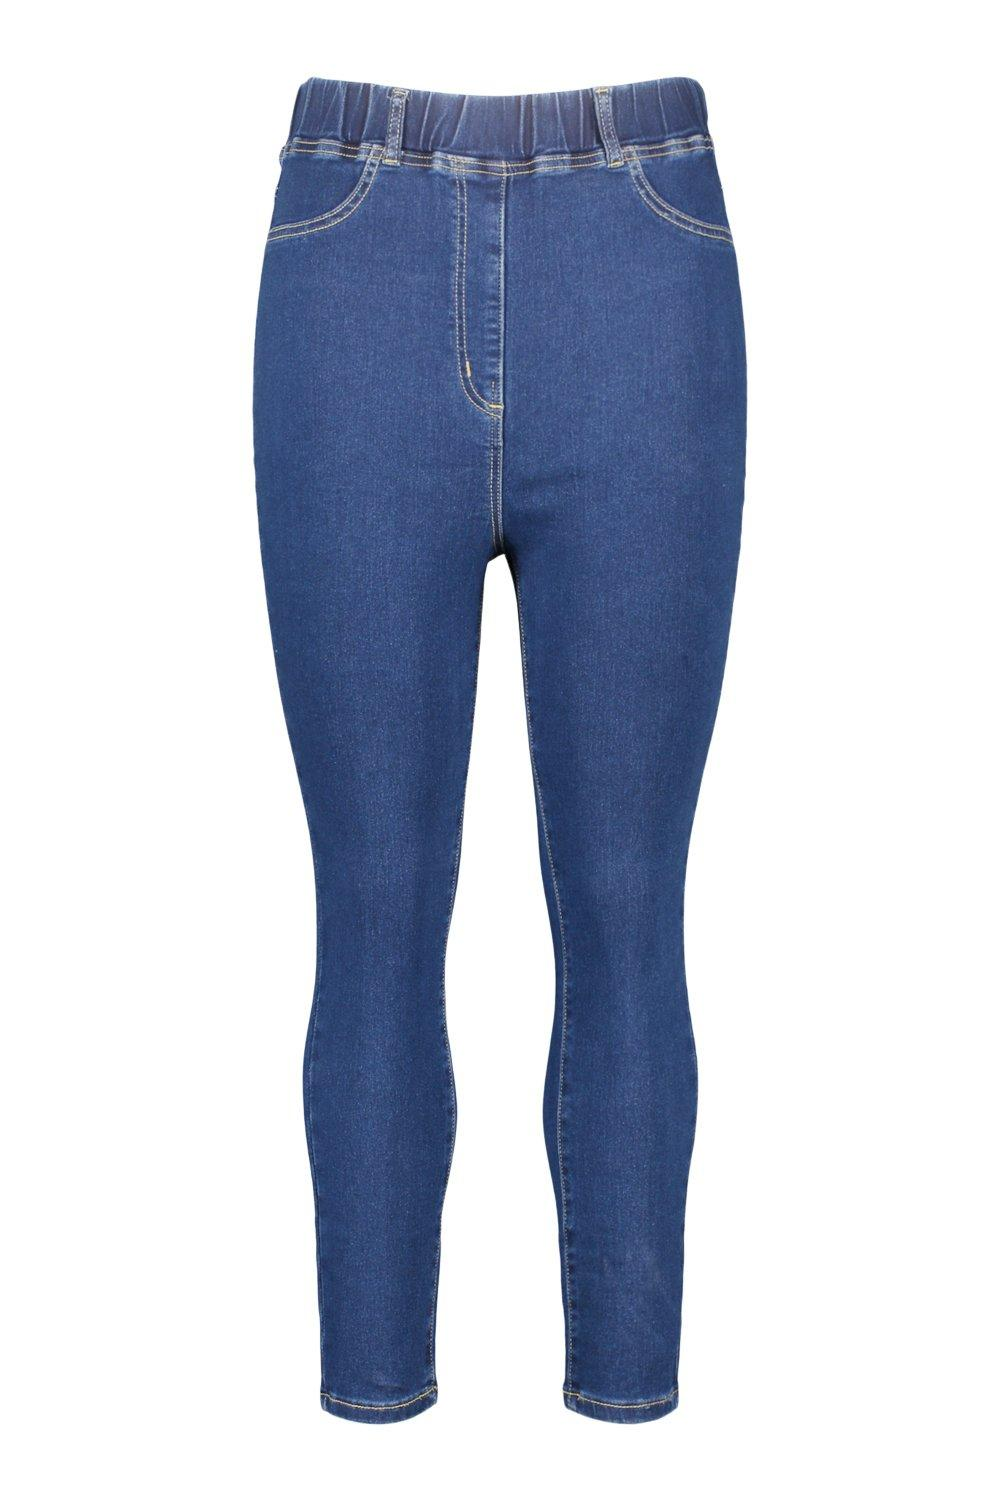 básicos Jeggings medio azul azul Plus Plus medio básicos básicos Jeggings Jeggings qrqw0TO